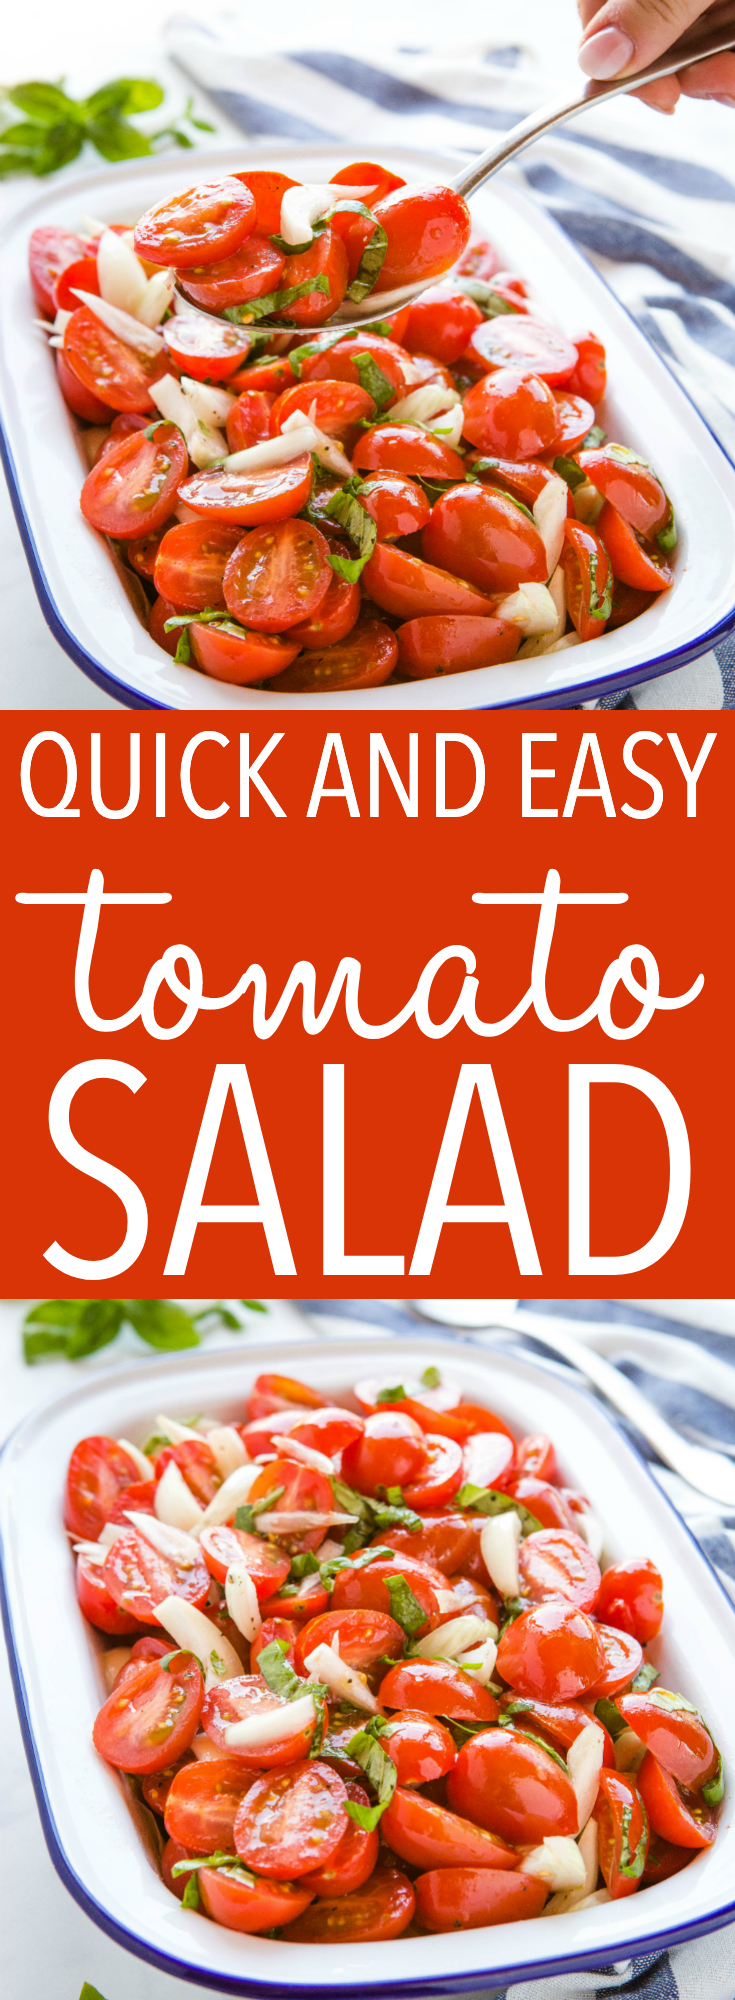 This Quick and Easy Tomato Salad is a classic easy salad recipe that's packed with ripe tomatoes, onions and fresh basil. It's the perfect simple side dish for summer! Recipe from thebusybaker.ca! #tomatosalad #tomatorecipe #sidedish #grilling #summer #recipe #quickandeasy via @busybakerblog